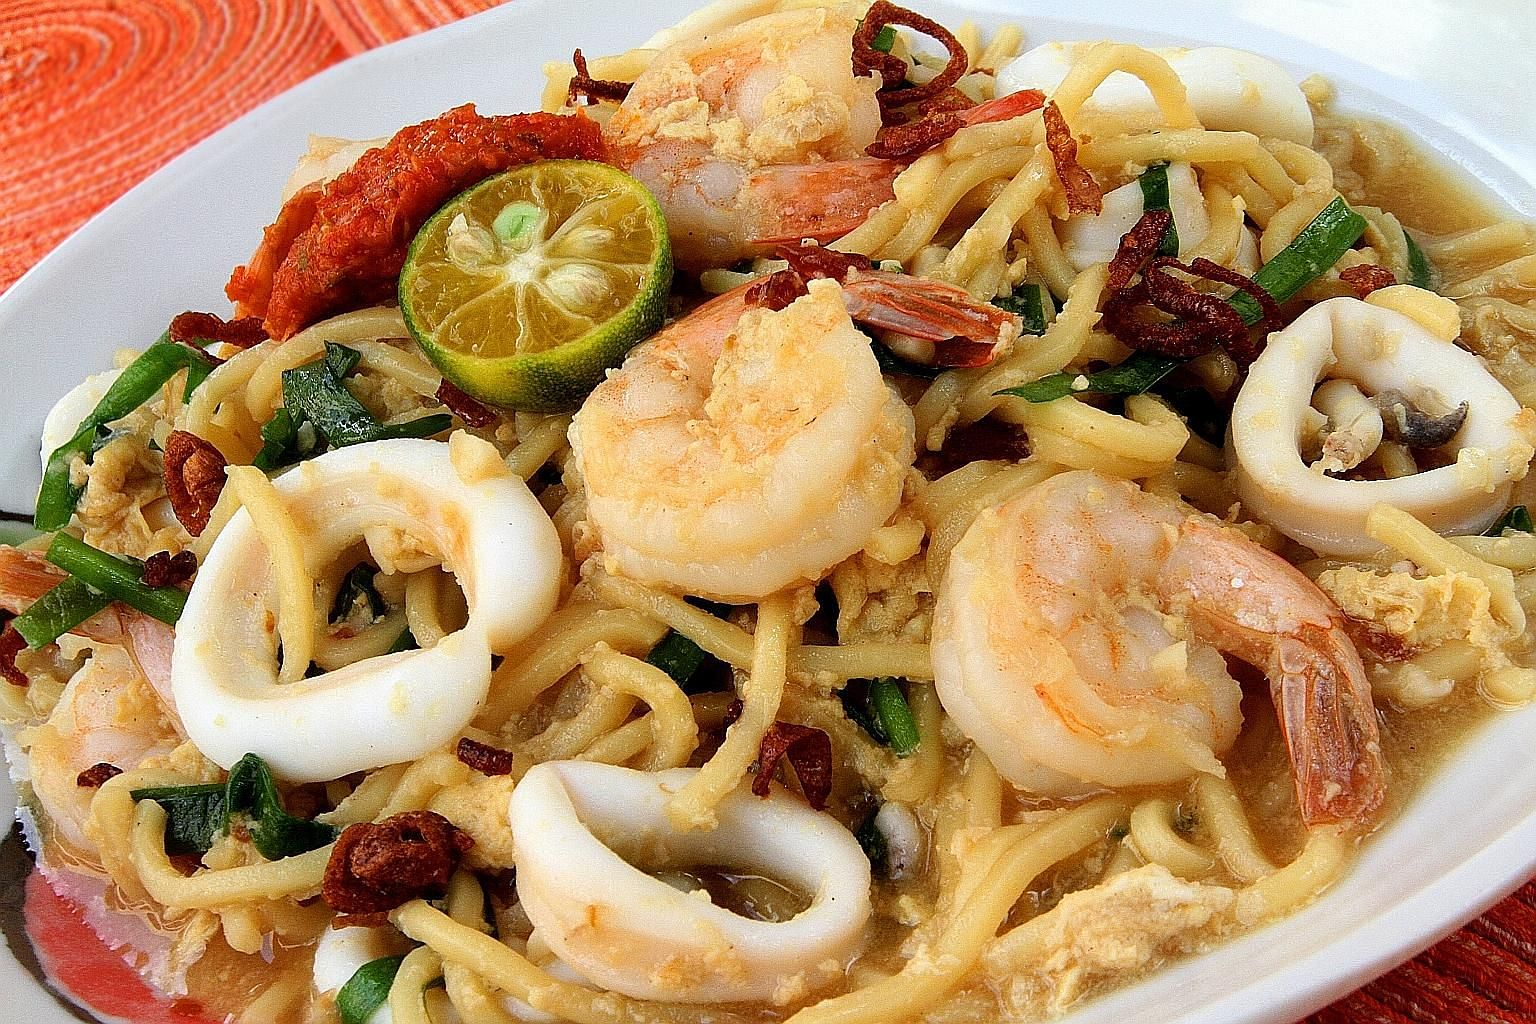 Jazz up yakisoba by cooking it in the style of fried Hokkien mee and using springy chukamen (wheat-flour noodles).